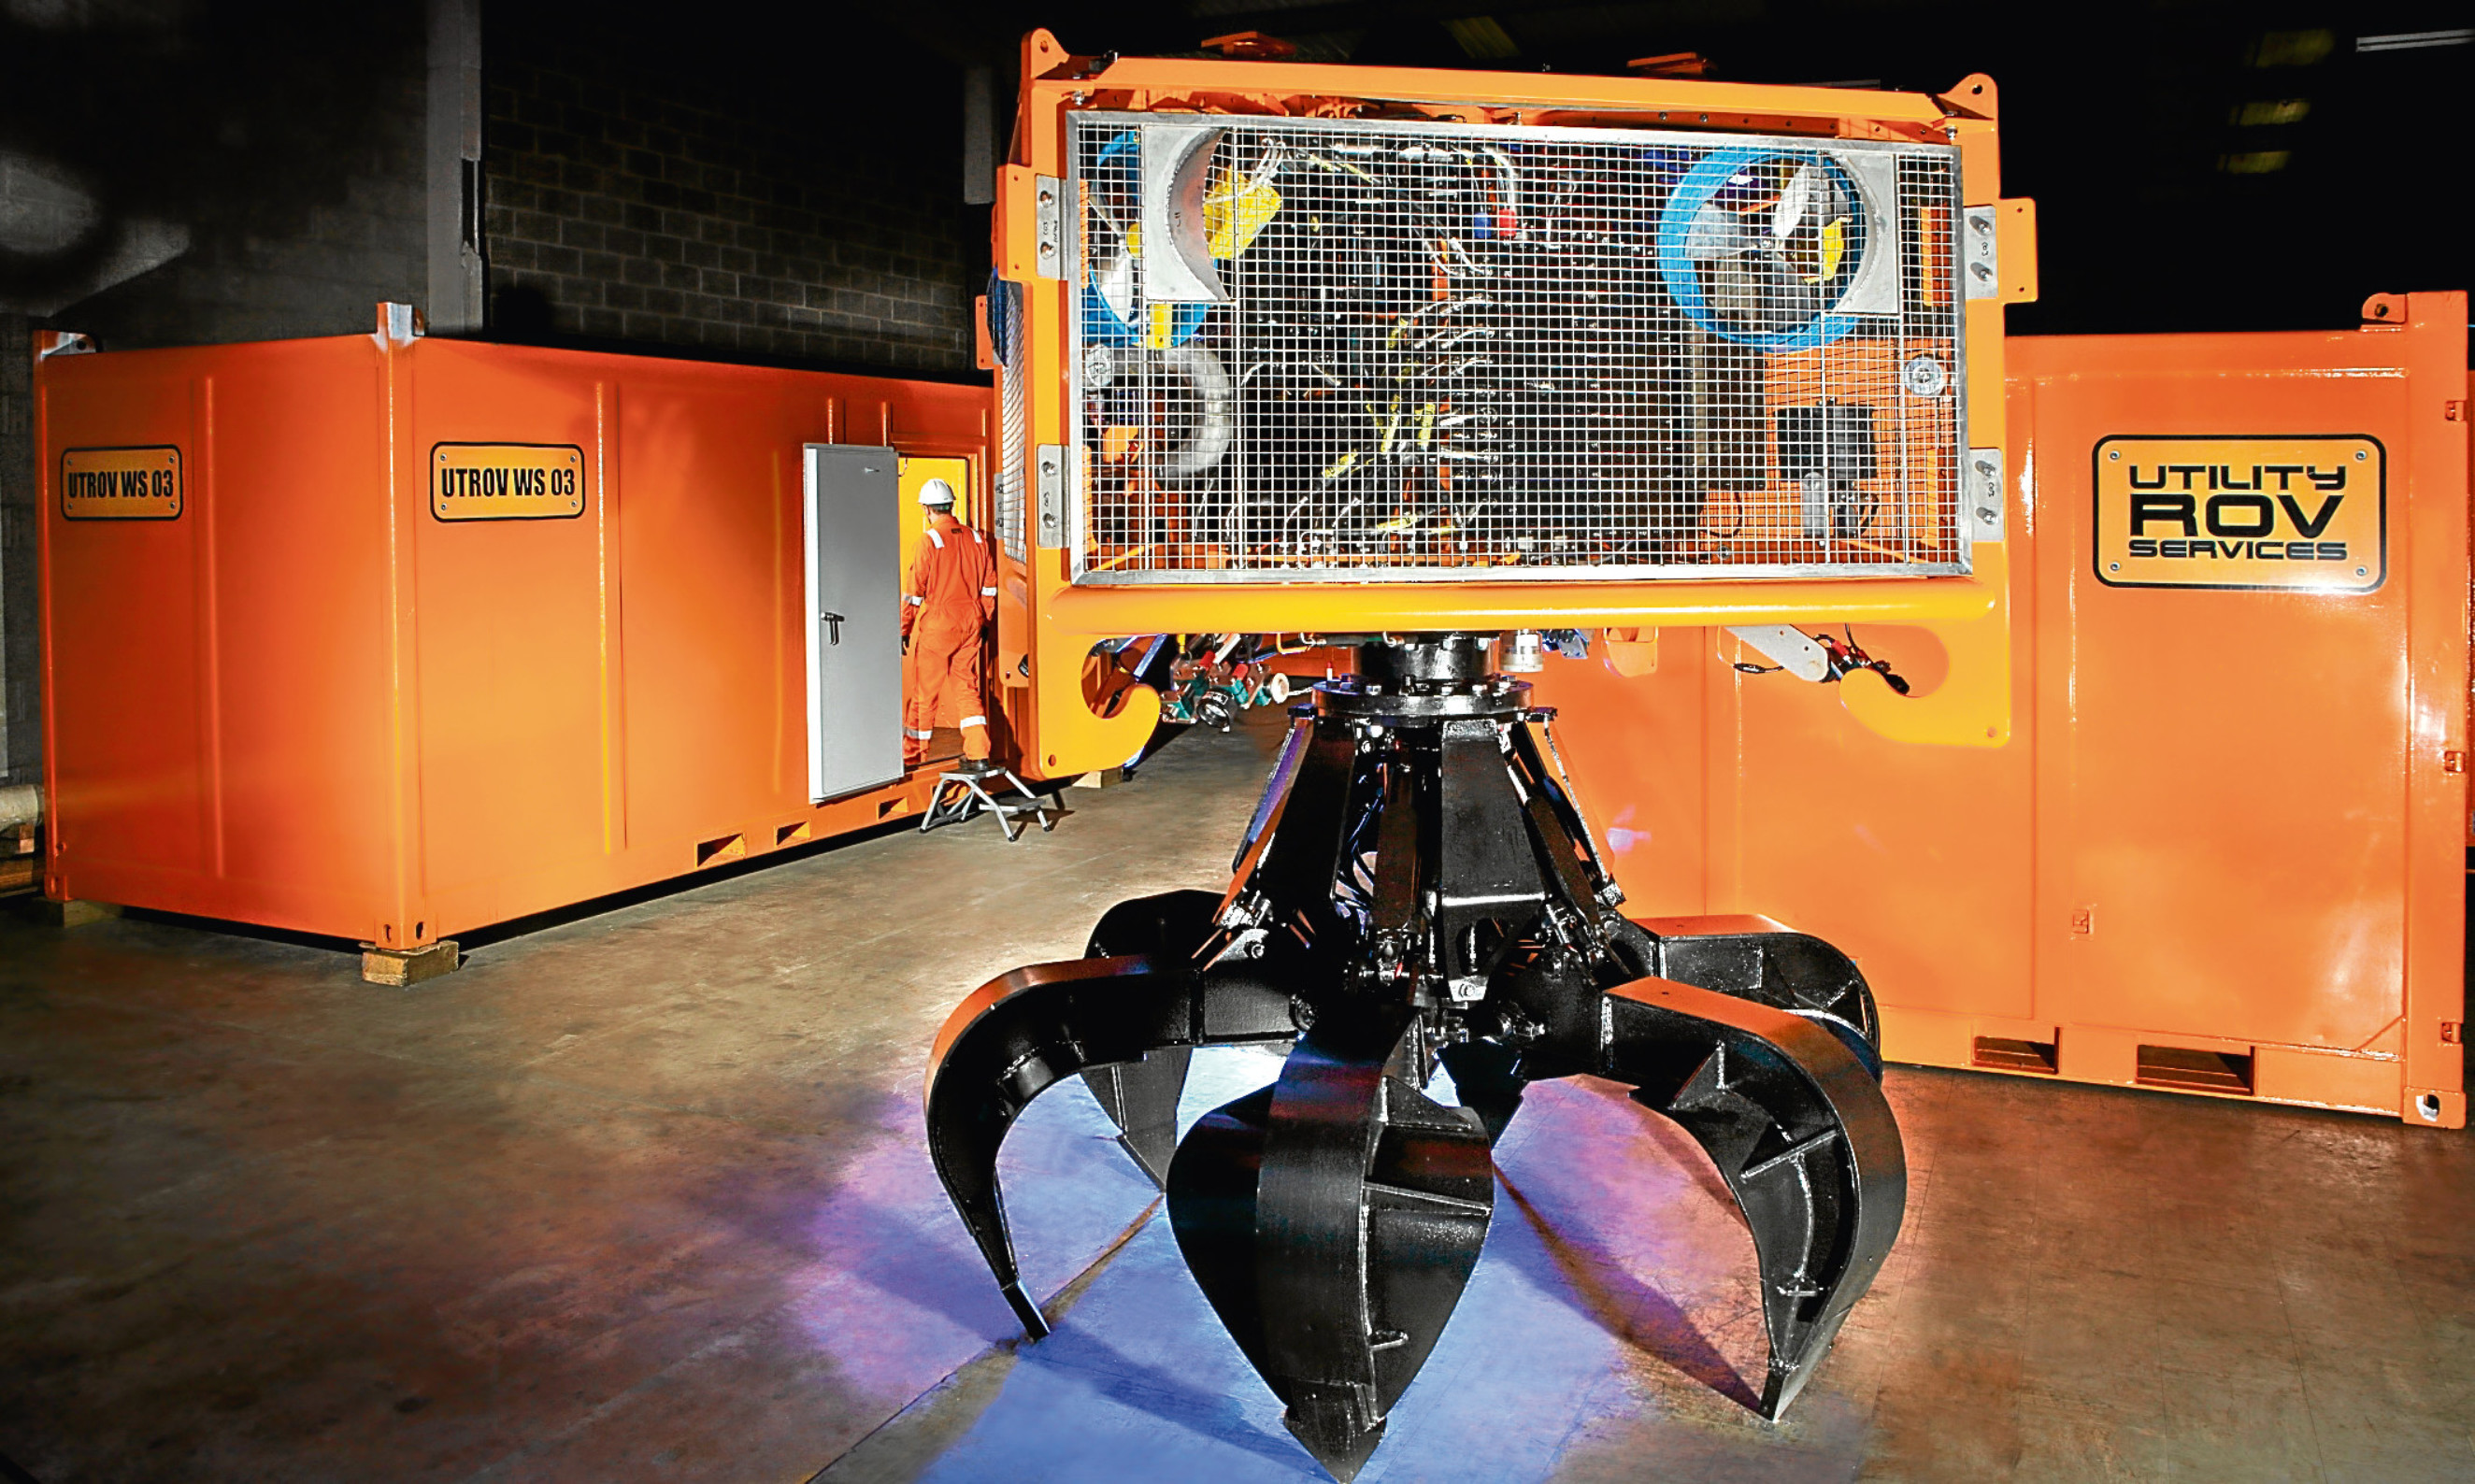 A remotely operated vehicle manufactured by Fife based Utility ROV